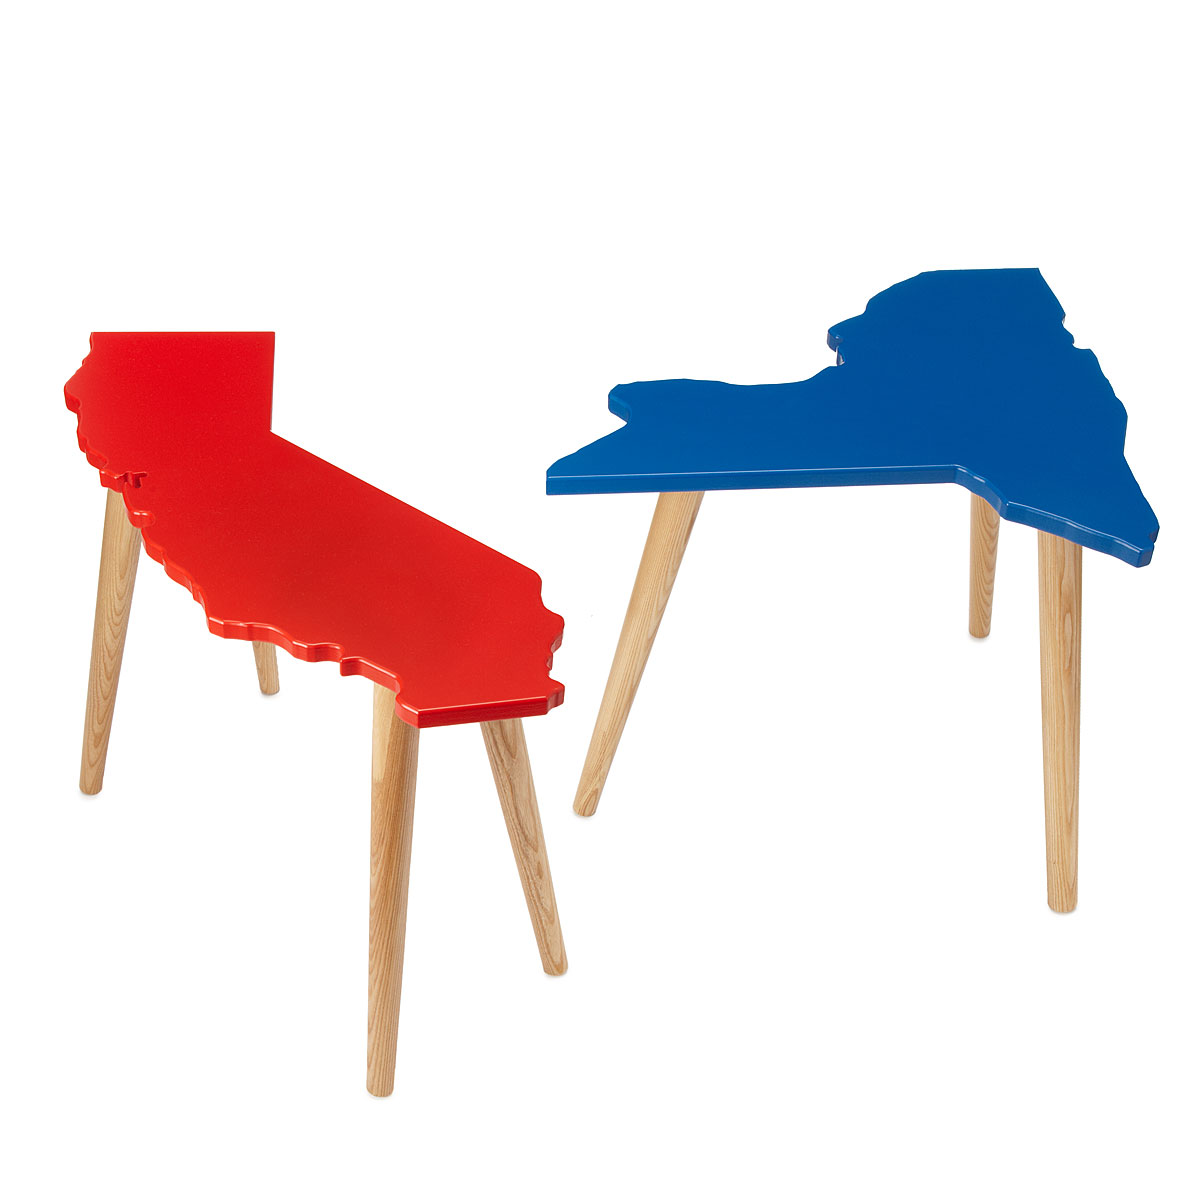 Customize your state and table color. $200 from Uncommon Goods.